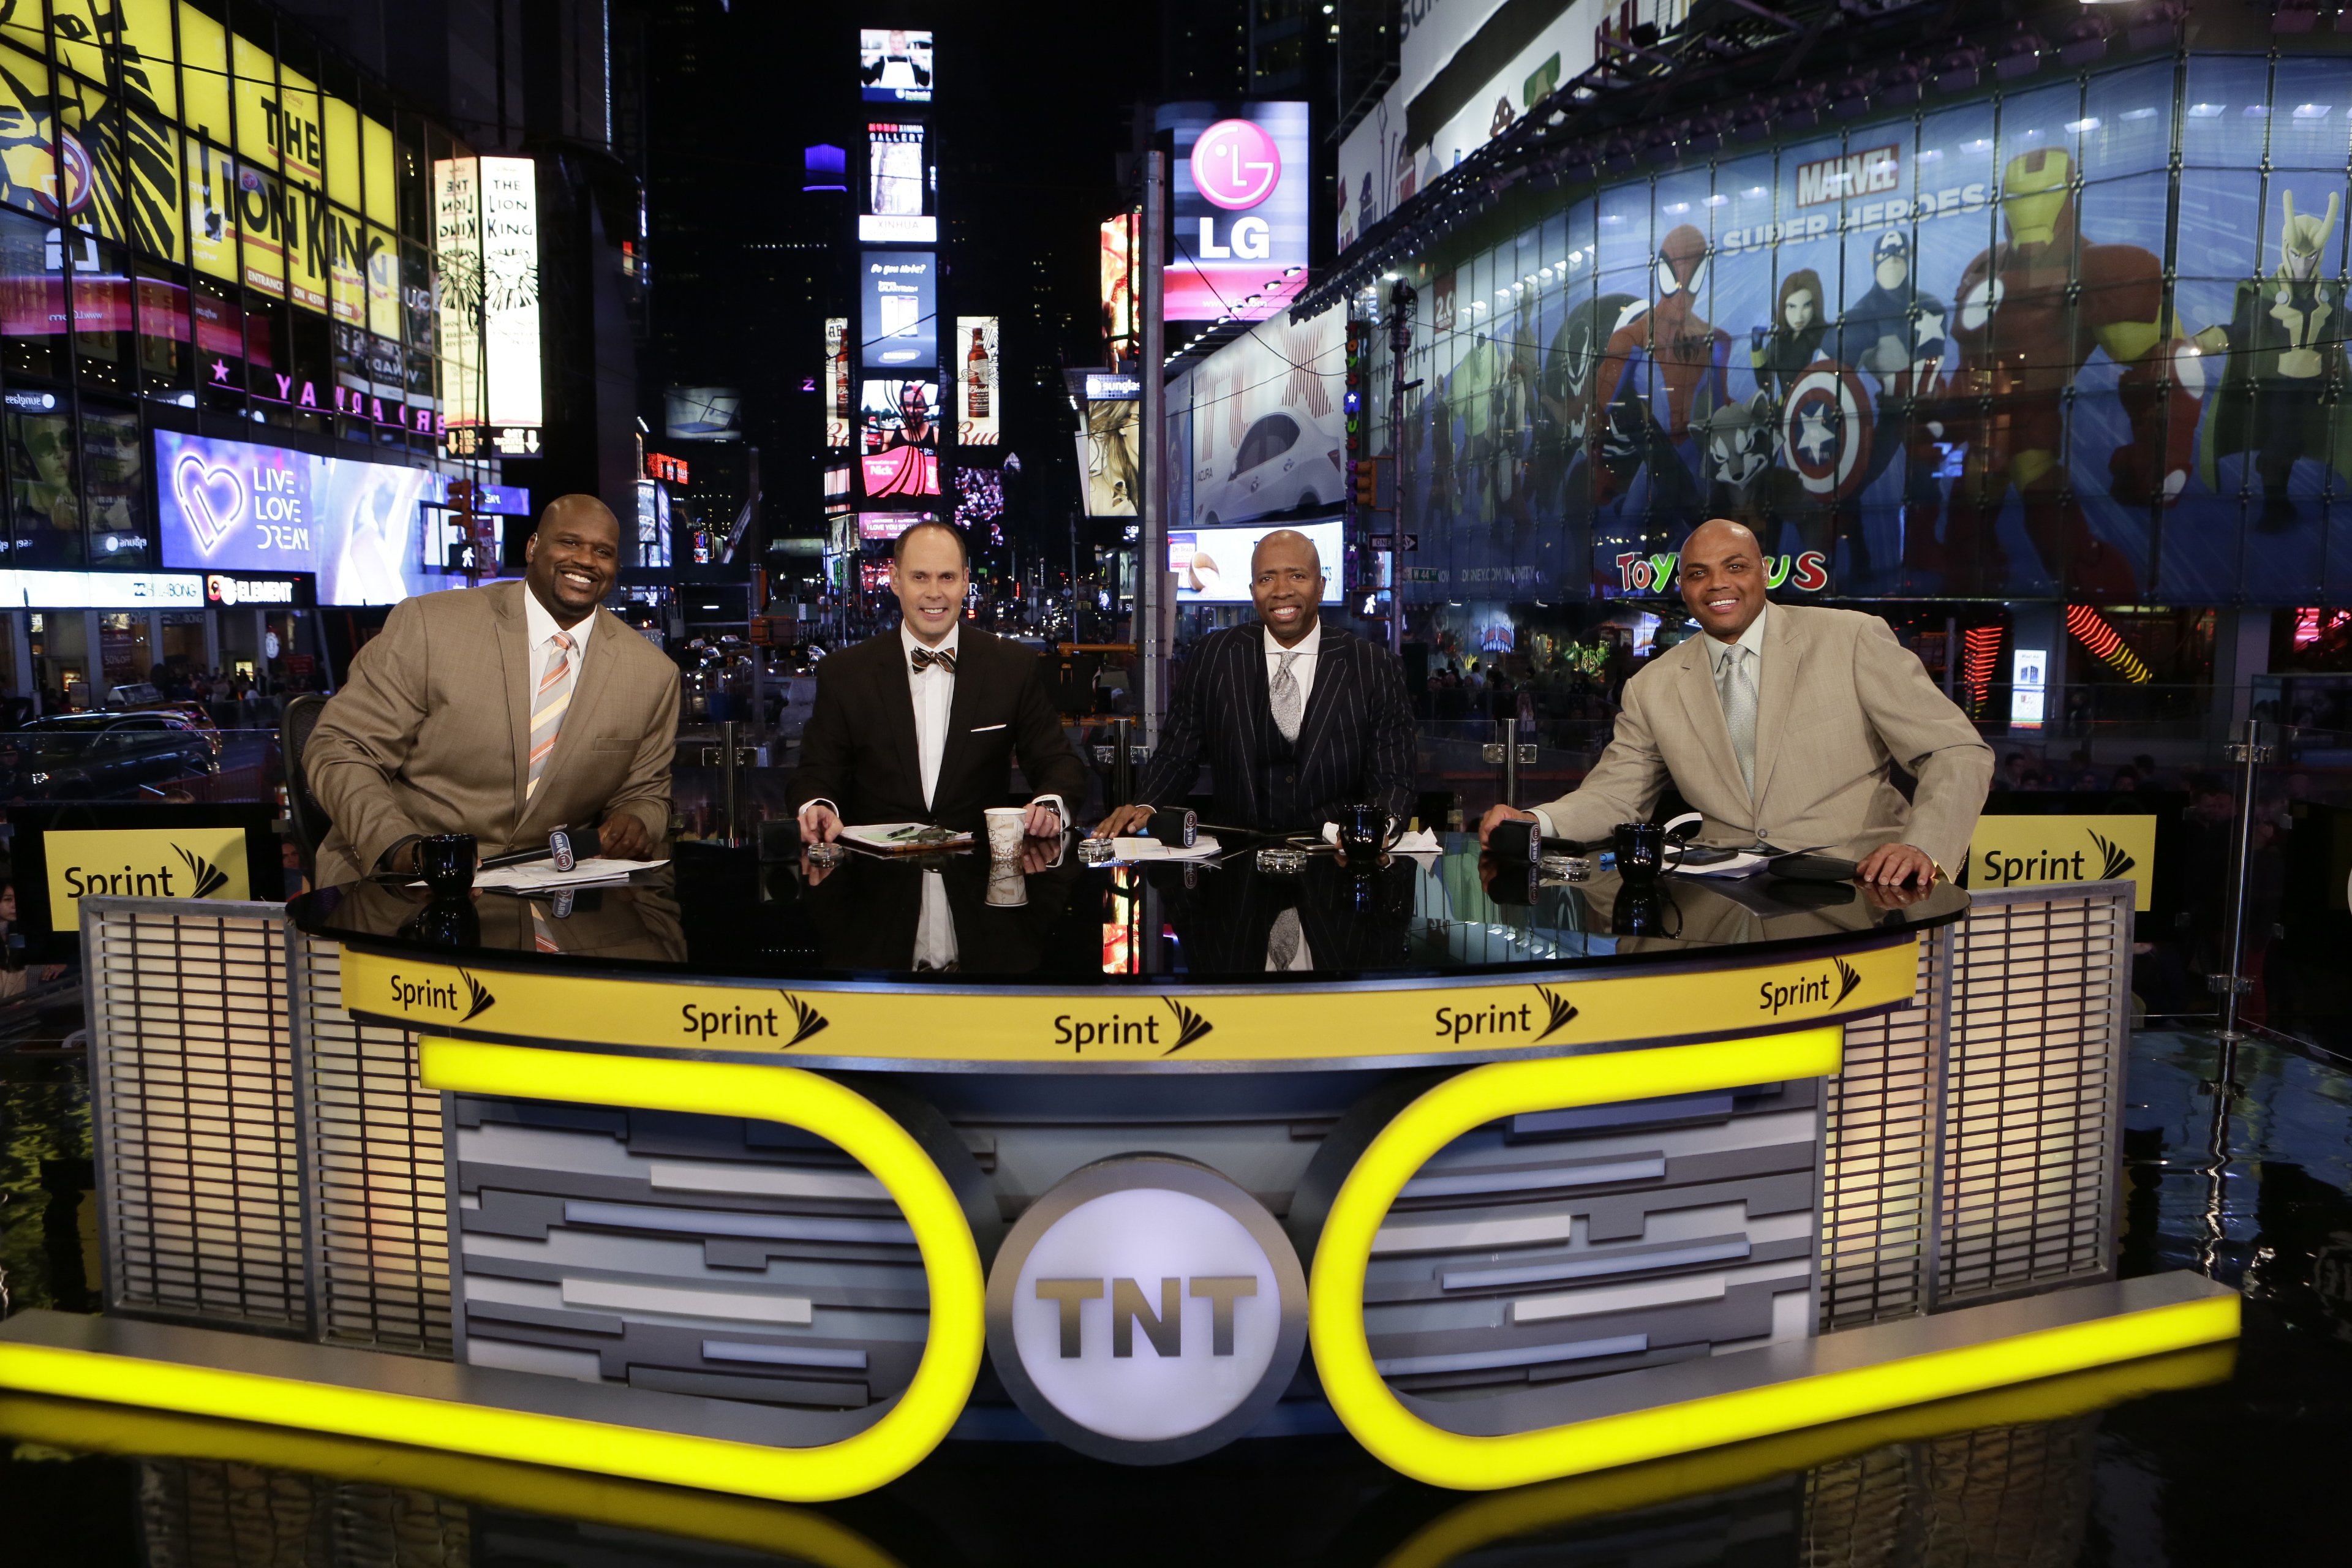 """NEW YORK, NY - OCTOBER 28: Ernie Johnson, Charles Barkley, Kenny Smith and Shaquille O'Neal of """"Inside the NBA"""" pose for a picture at the TNT tip off event at Times Square Offices on October 27, 2014 in New York, New York. (Photo by Steven Freeman/NBAE vi"""